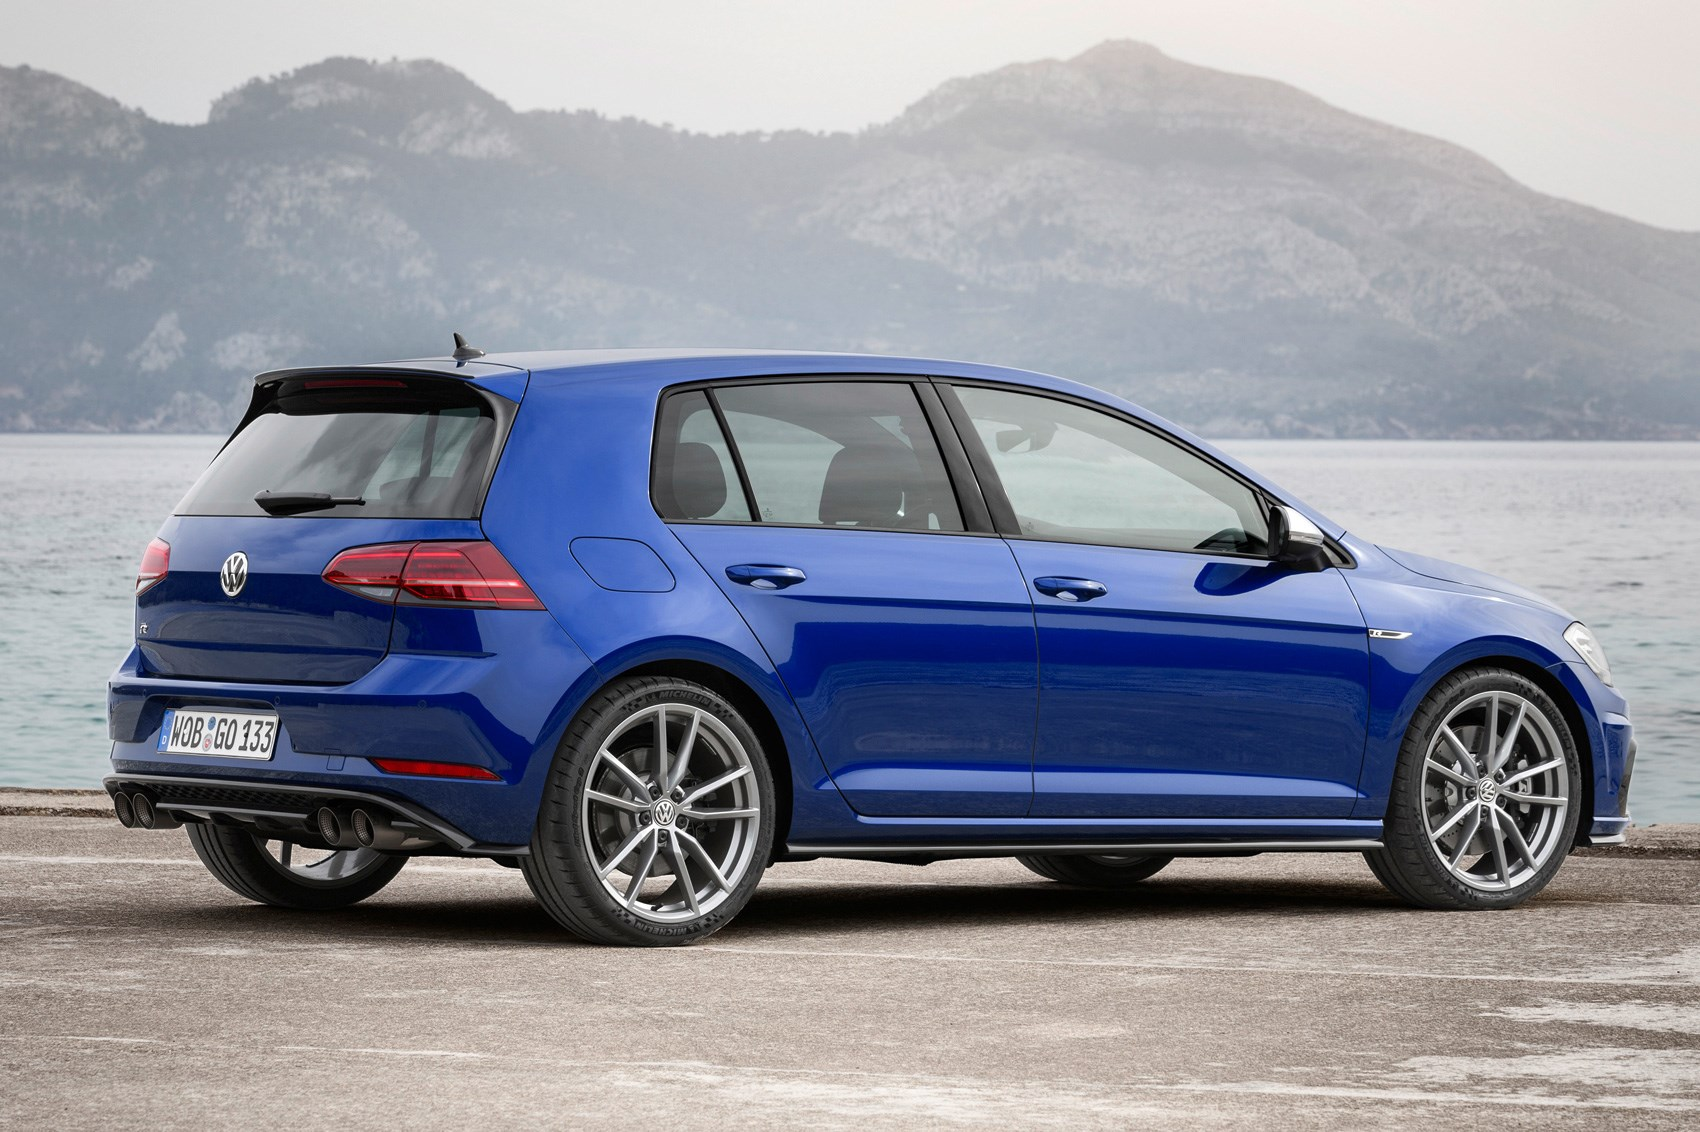 golf r performance pack 200 000th hot hatch revealed car magazine. Black Bedroom Furniture Sets. Home Design Ideas